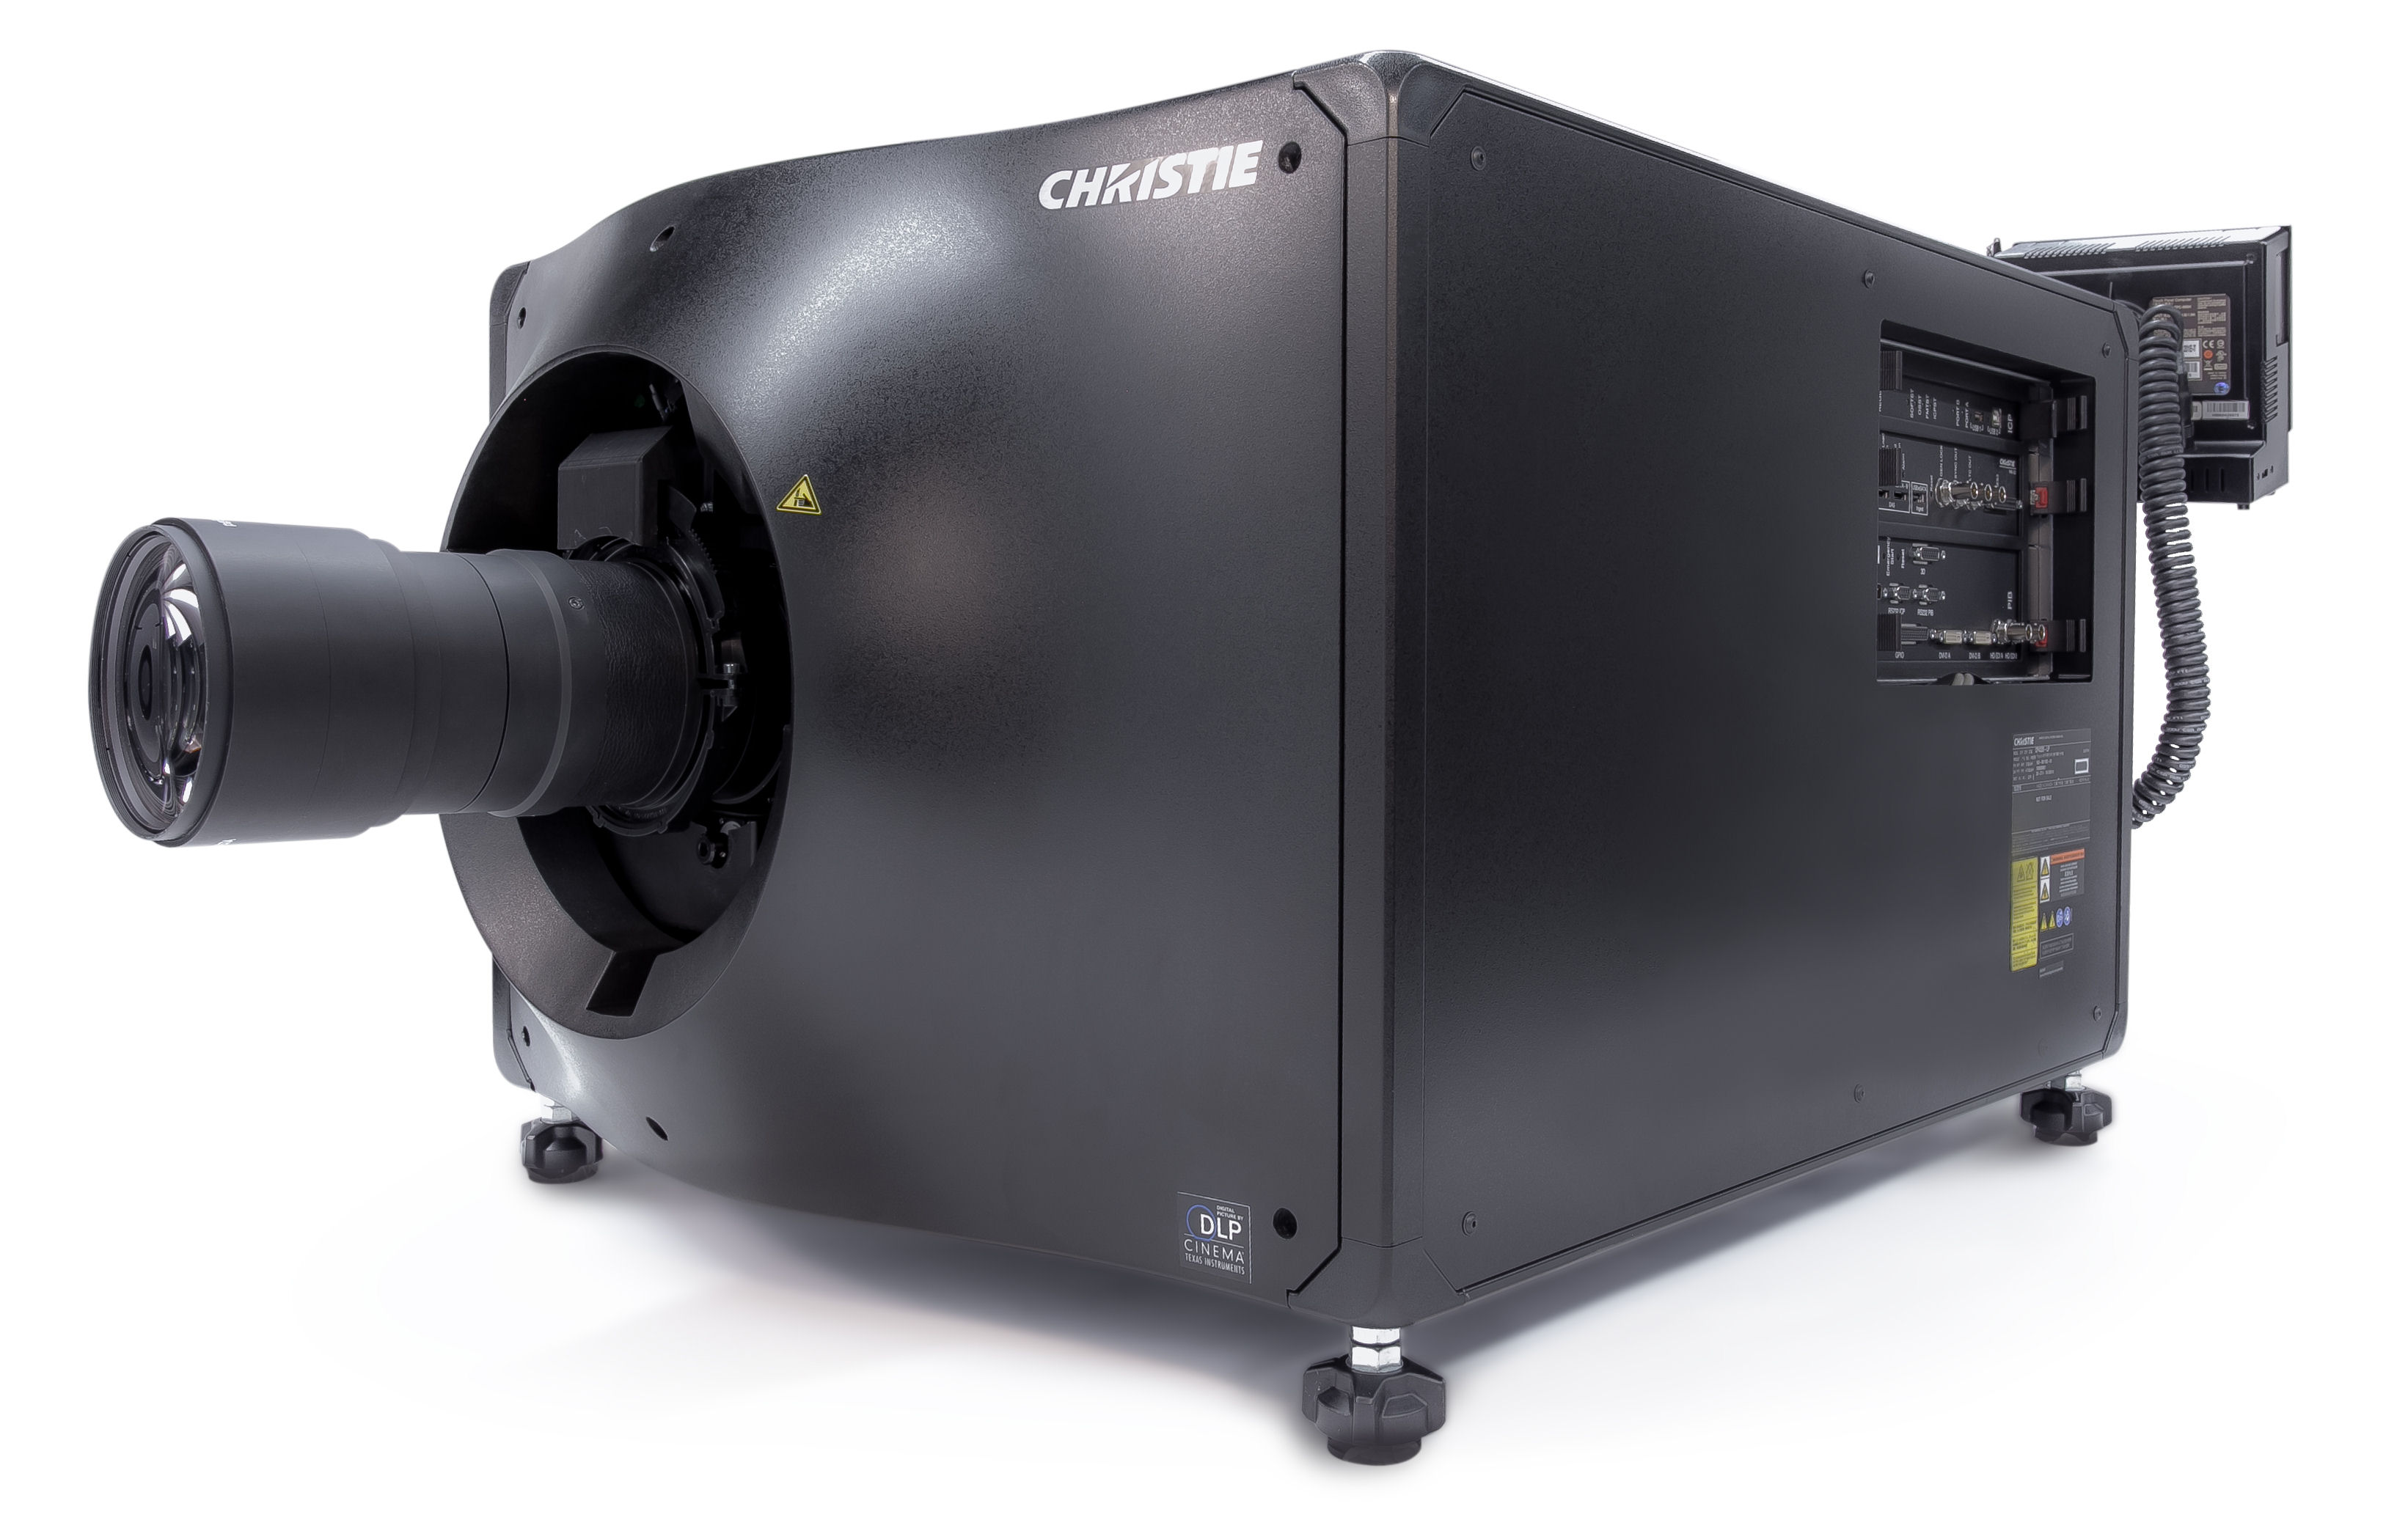 First Pure RGB Laser projector for mainstream cinema exhibition